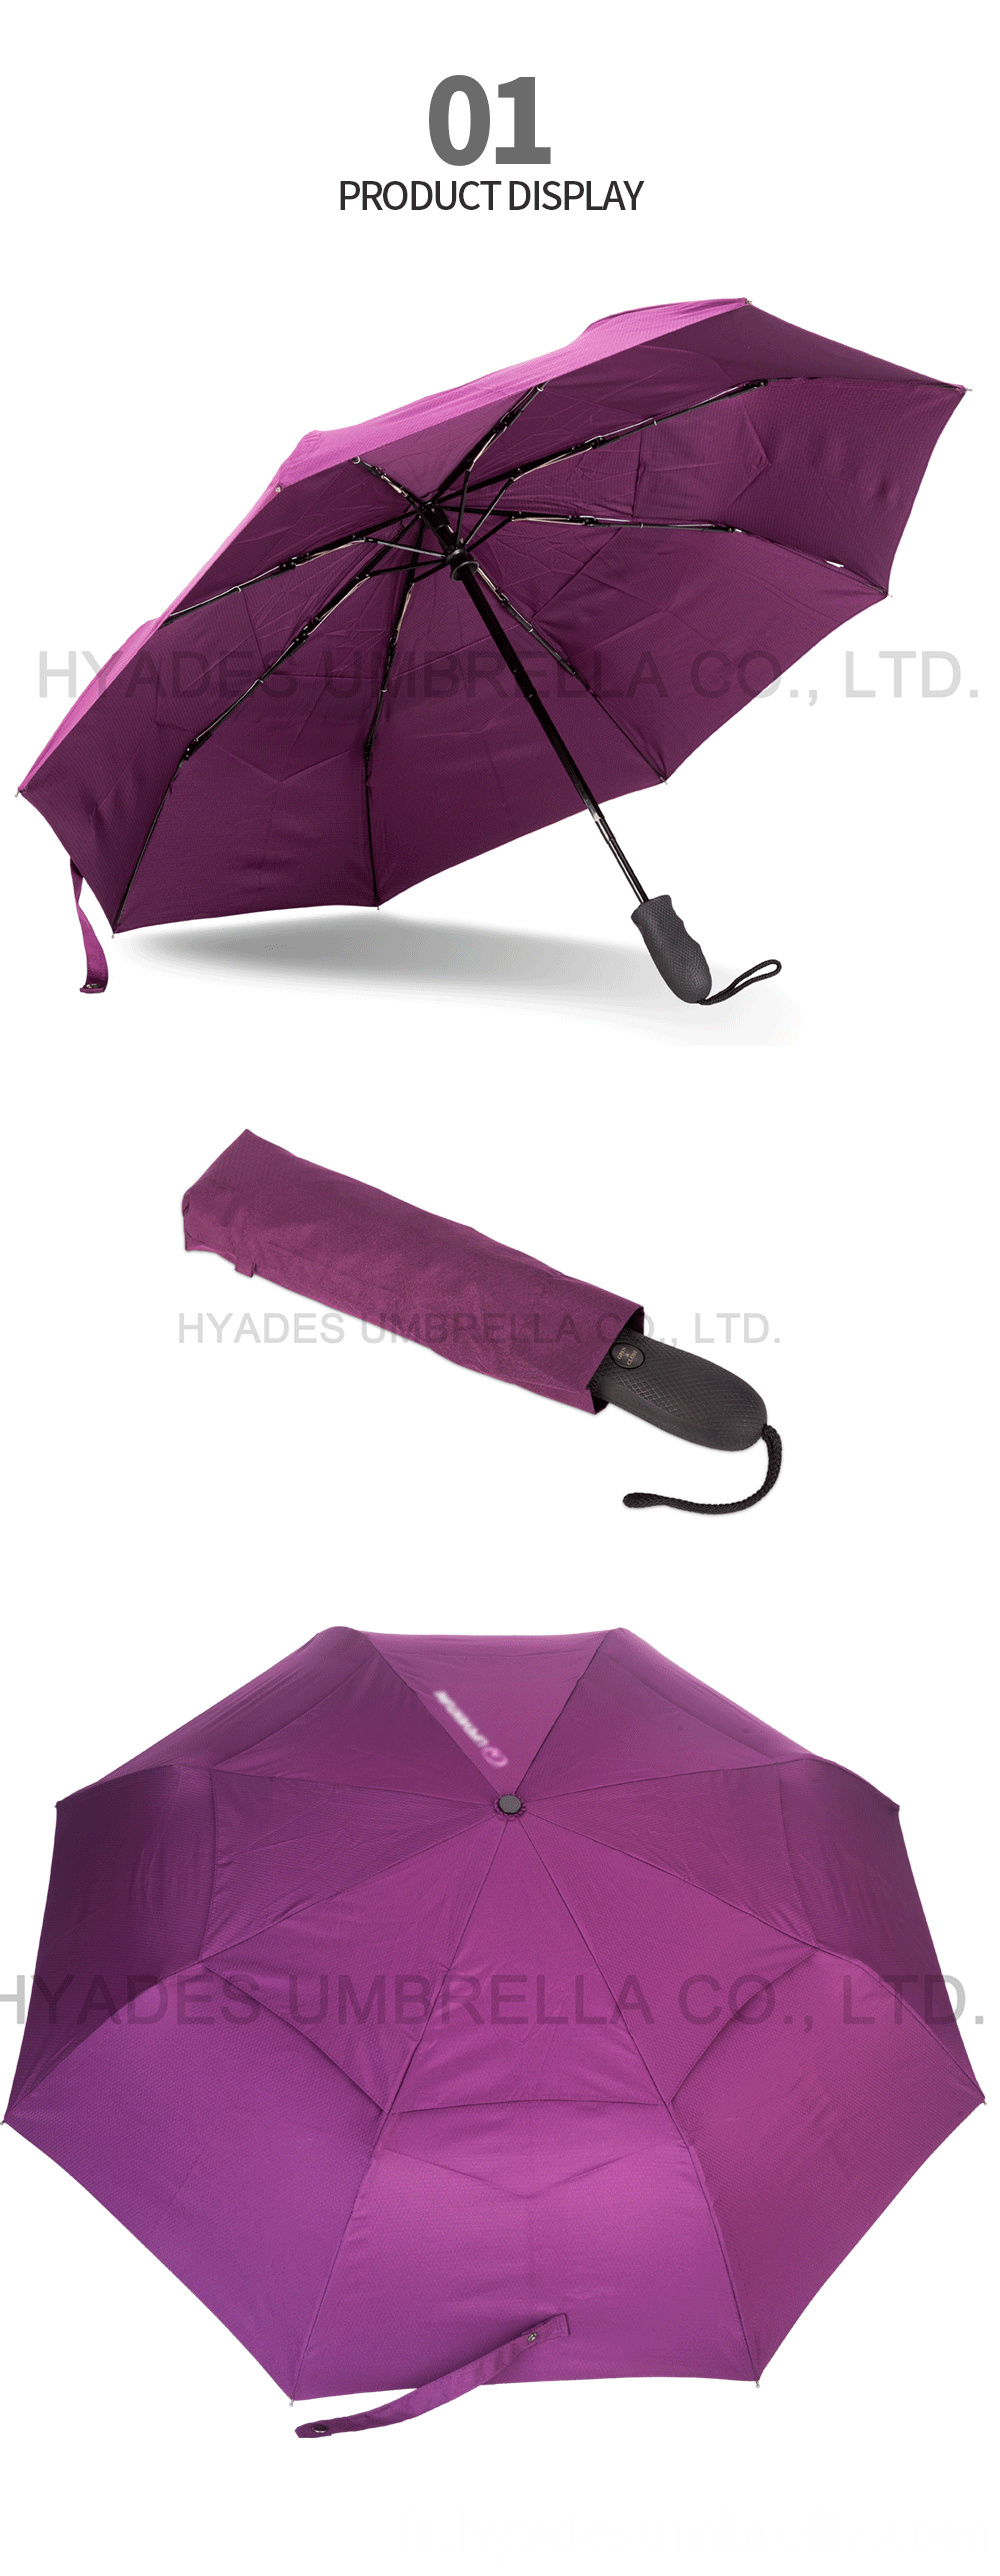 Auto Ope And Close Folding Umbrella Double Layered